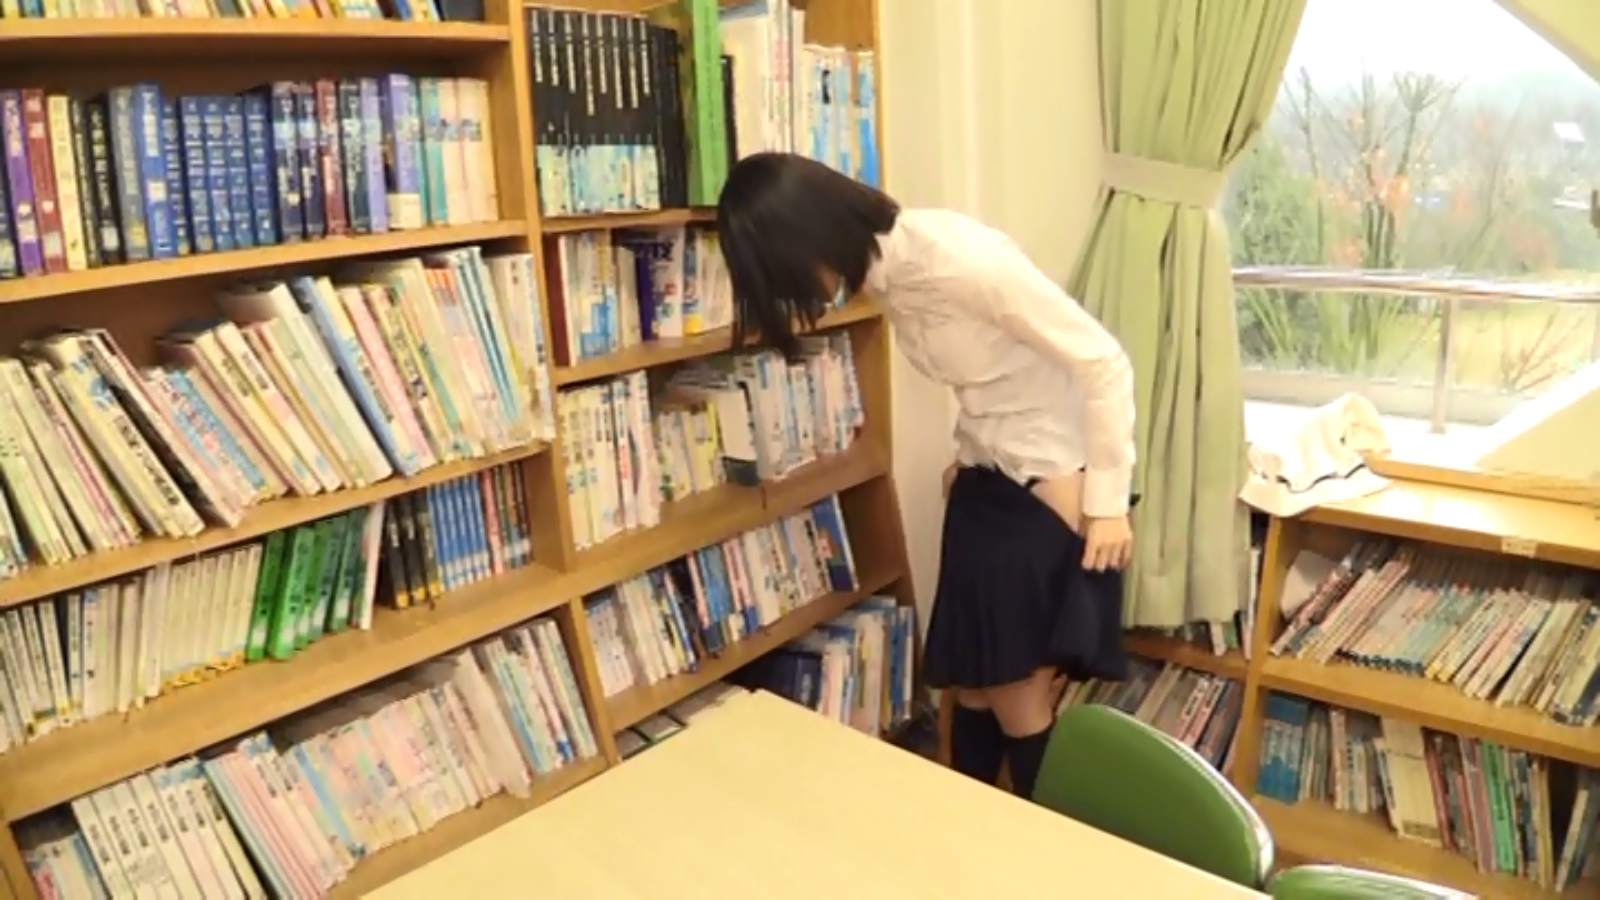 Every secret in the library177